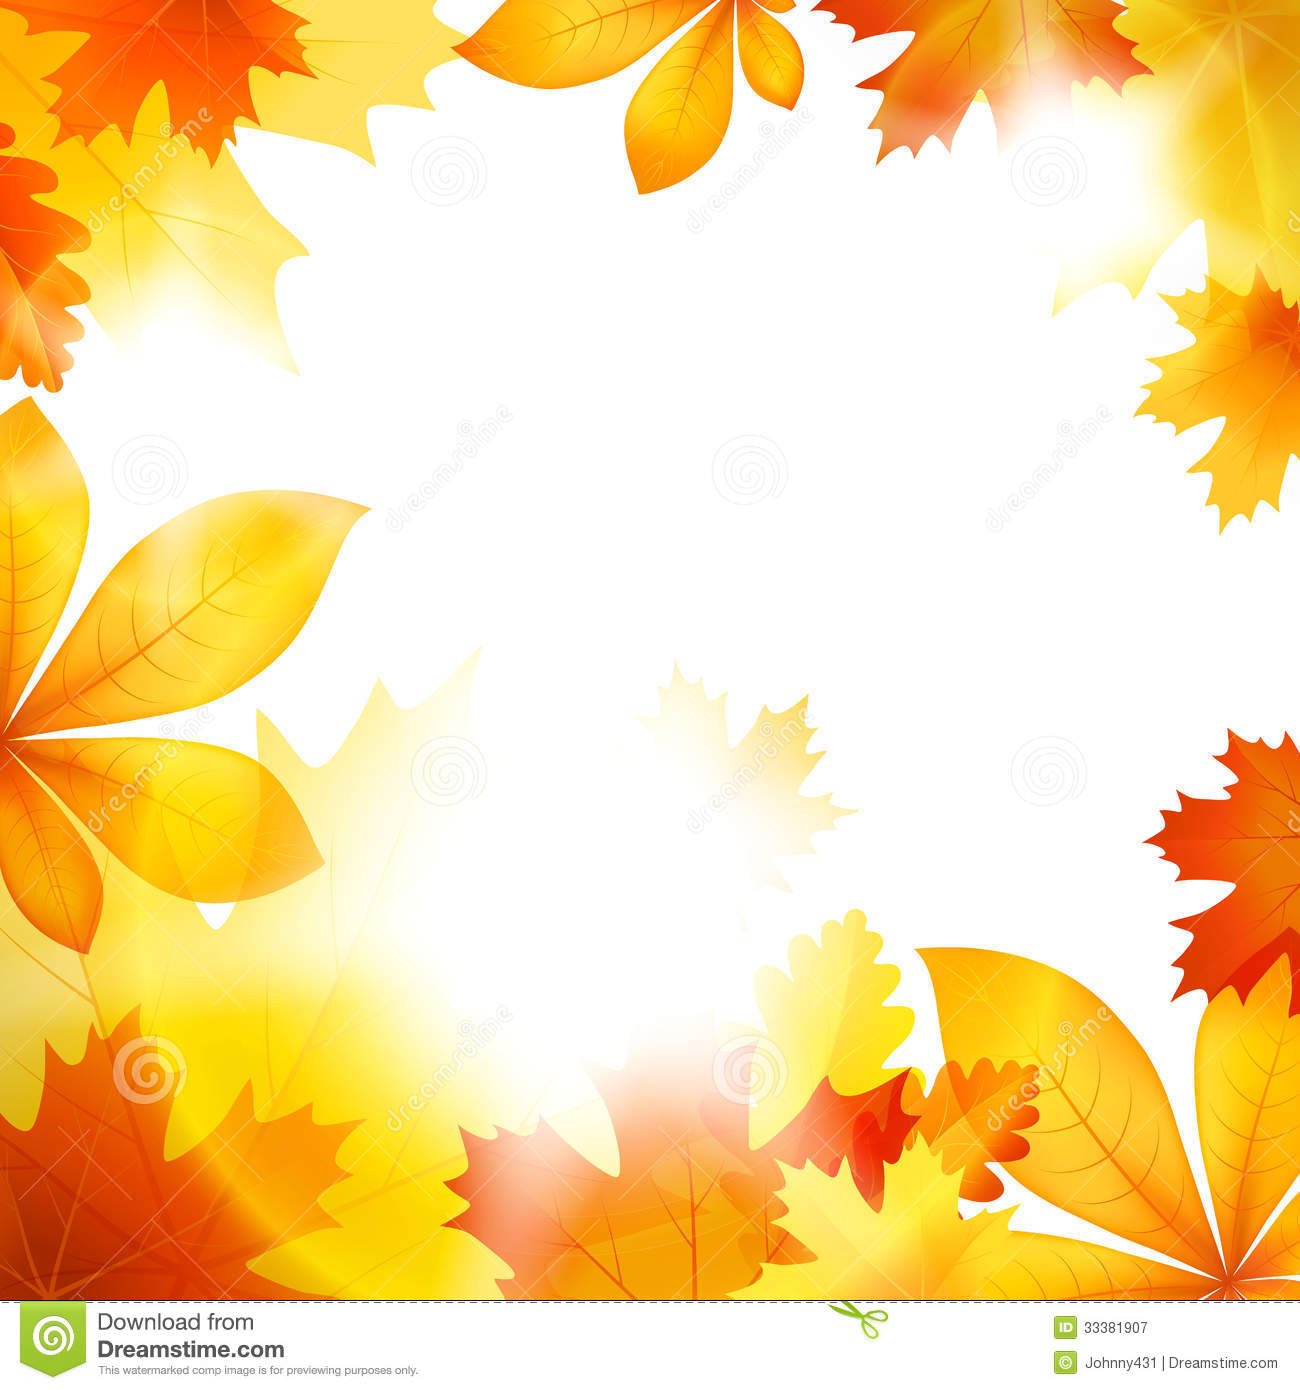 Fall Leaves Background Royalty Free Clipart Image LONG